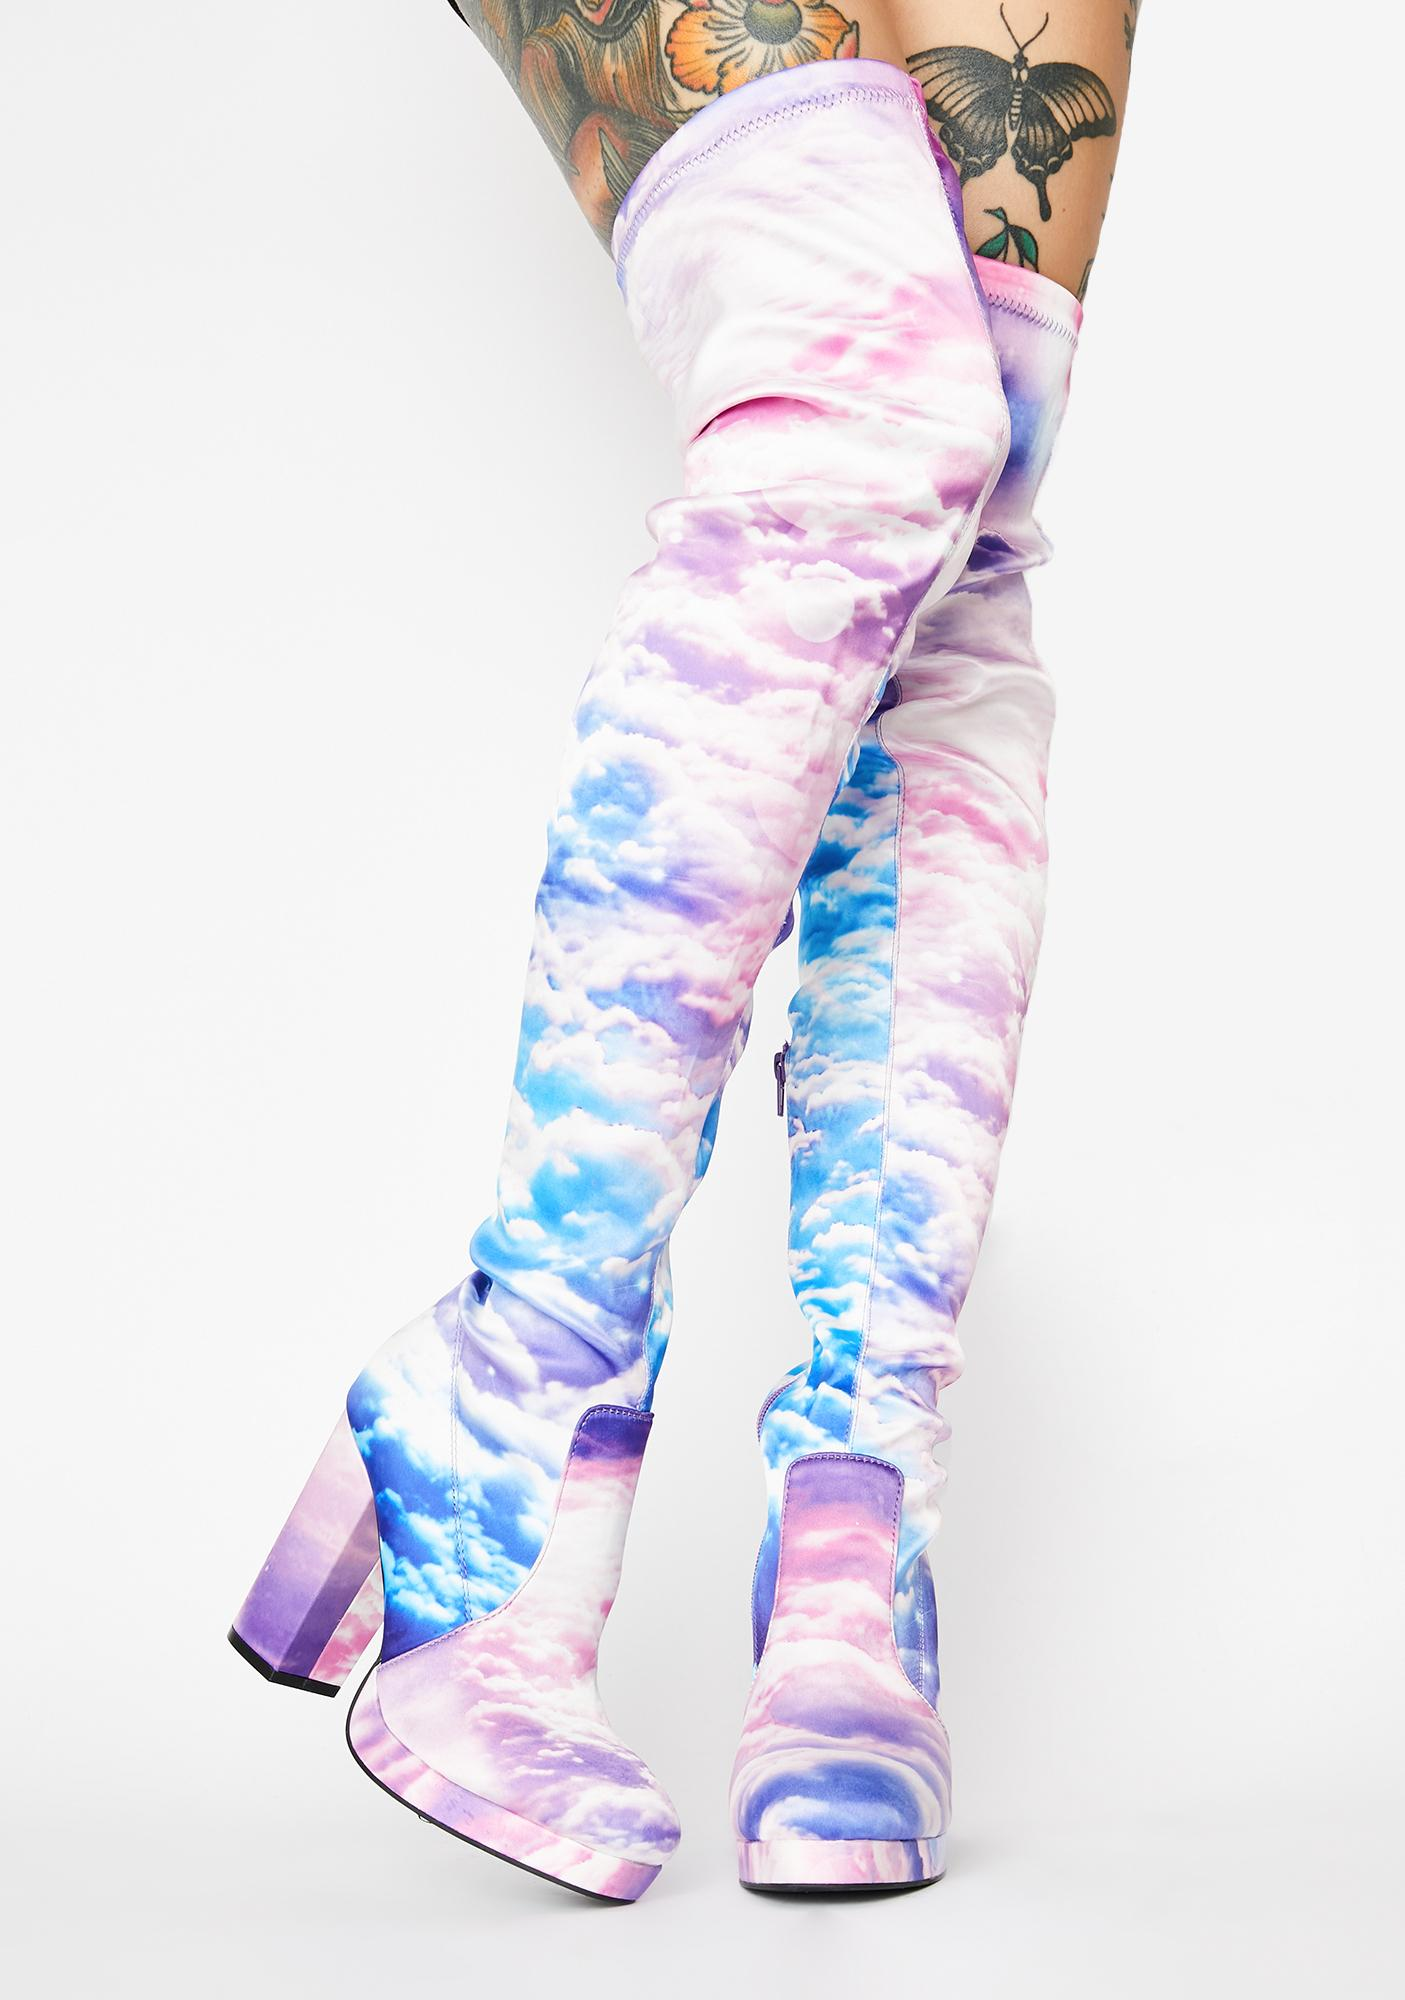 HOROSCOPEZ Heaven's Calling Thigh High Boots